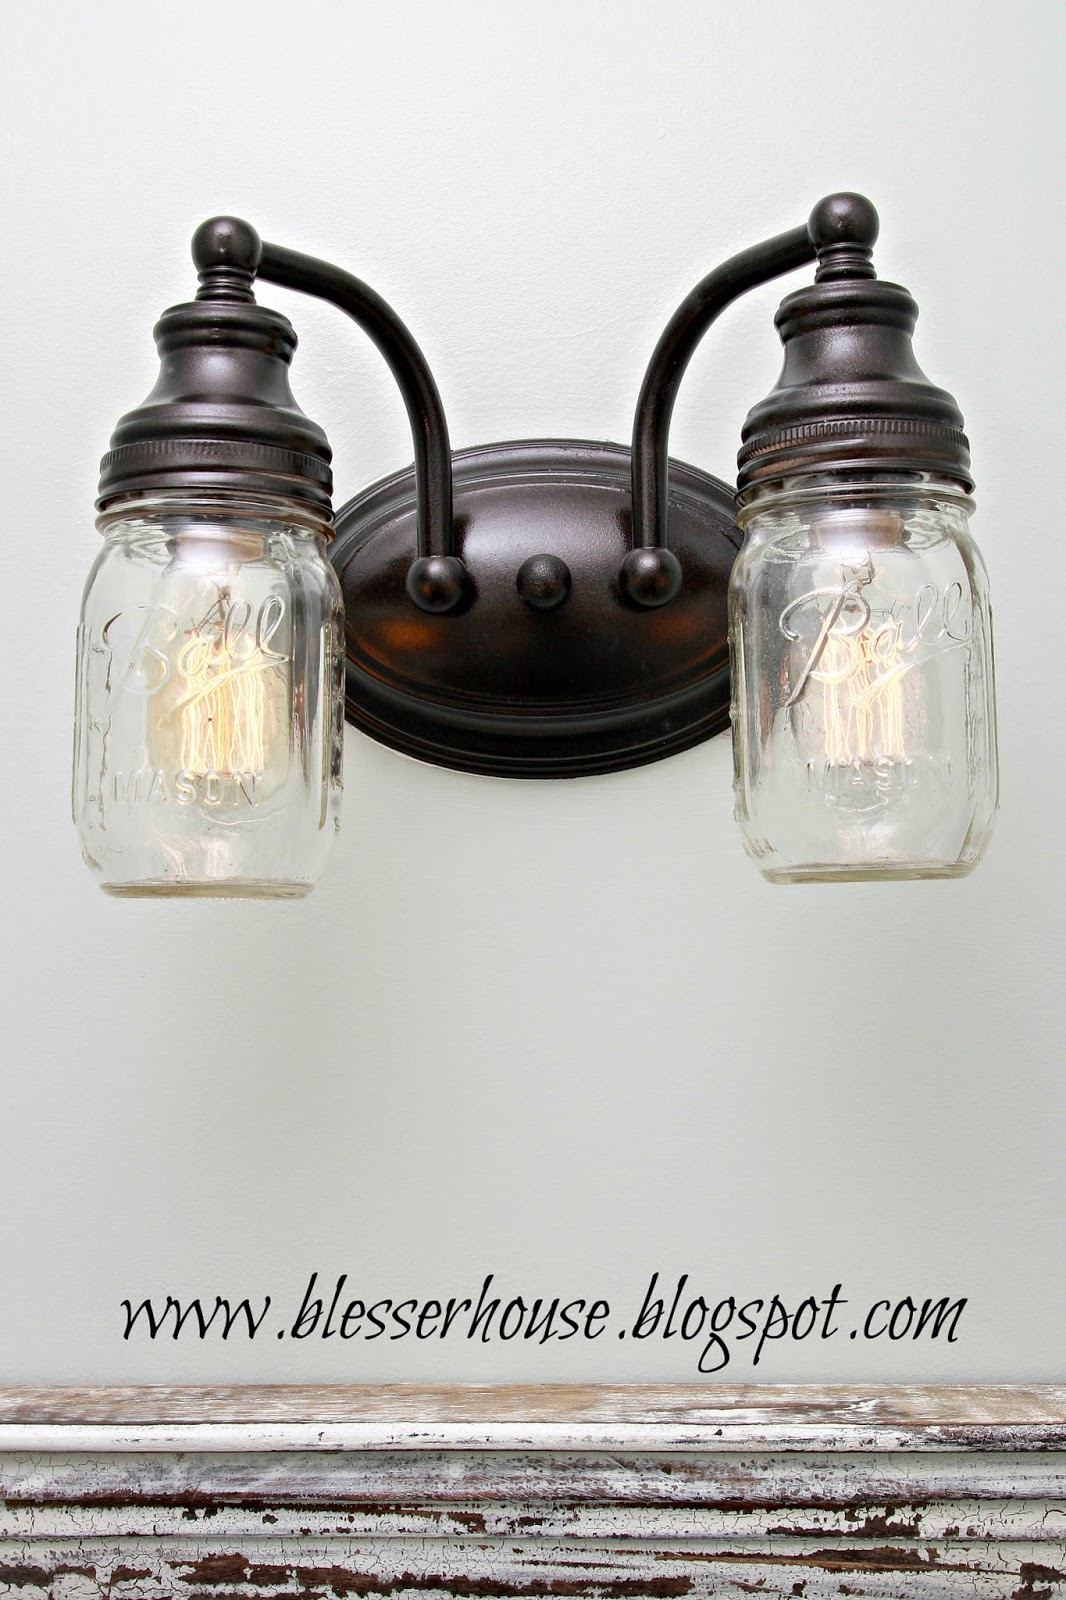 Bathroom Vanity Mason Jar Light diy mason jar vanity light - bless'er house